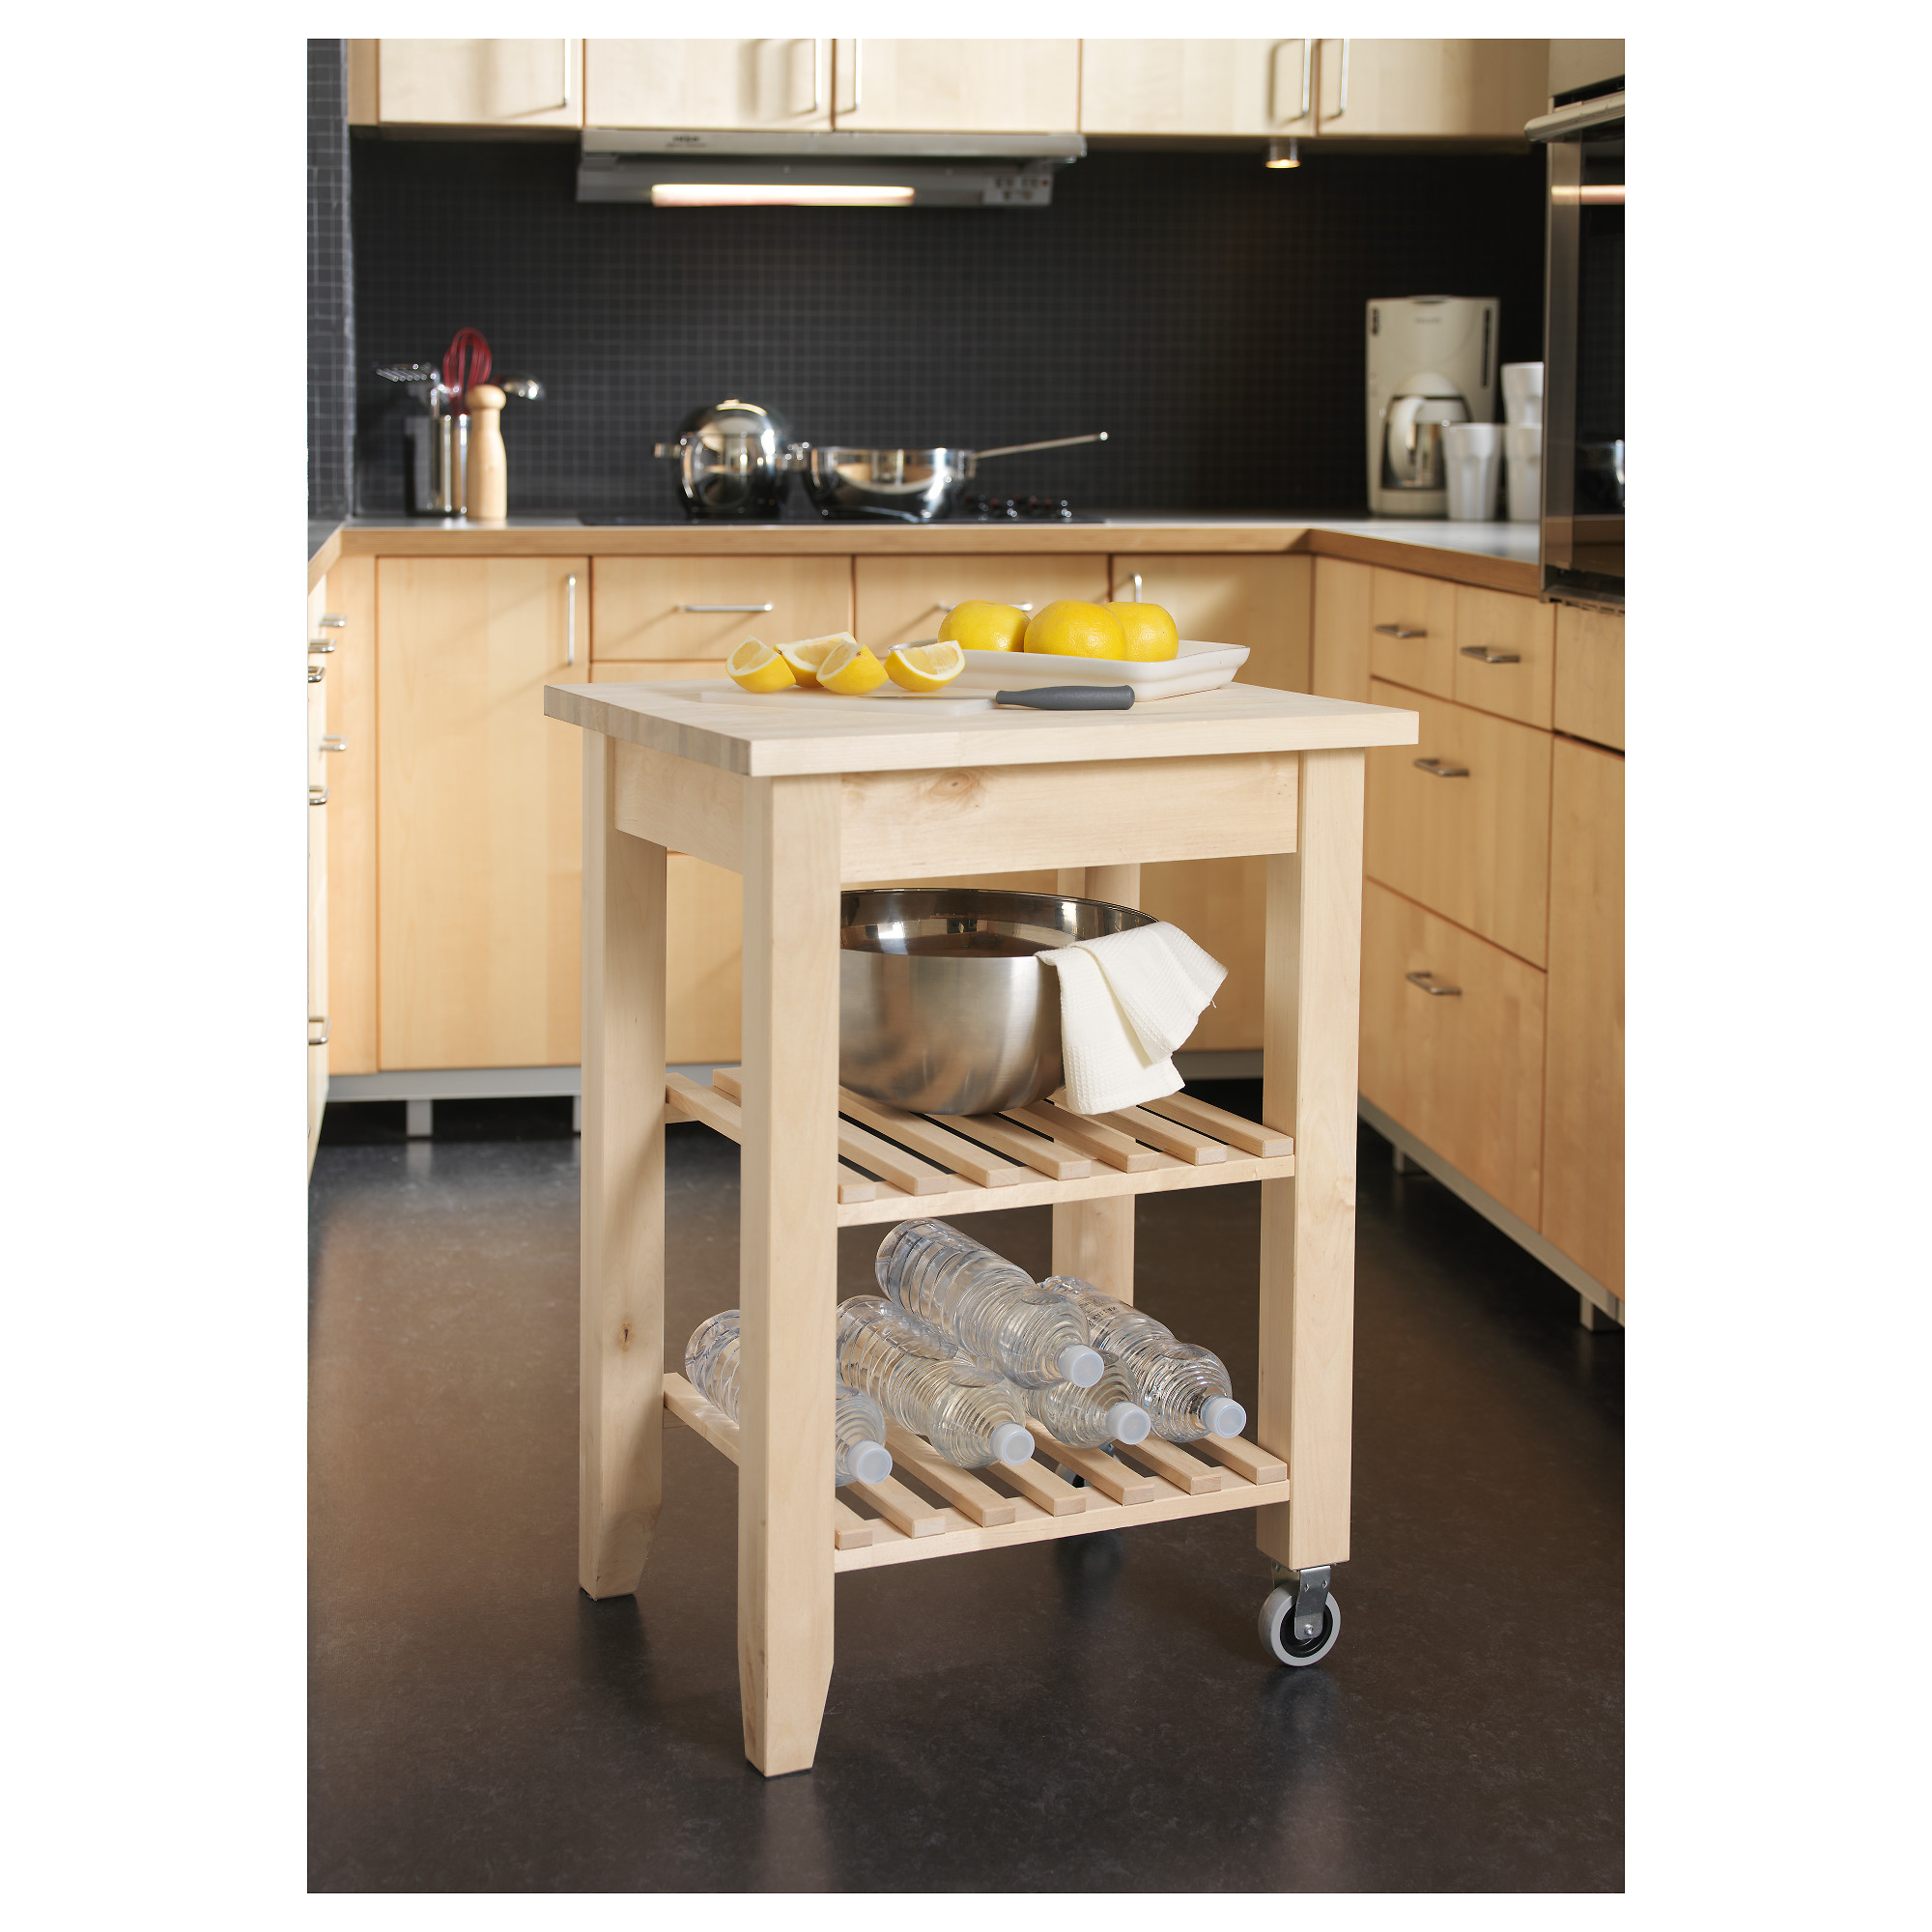 An IKEA Bekvam portable butcher block with wheels is in a clean and organized kitchen.